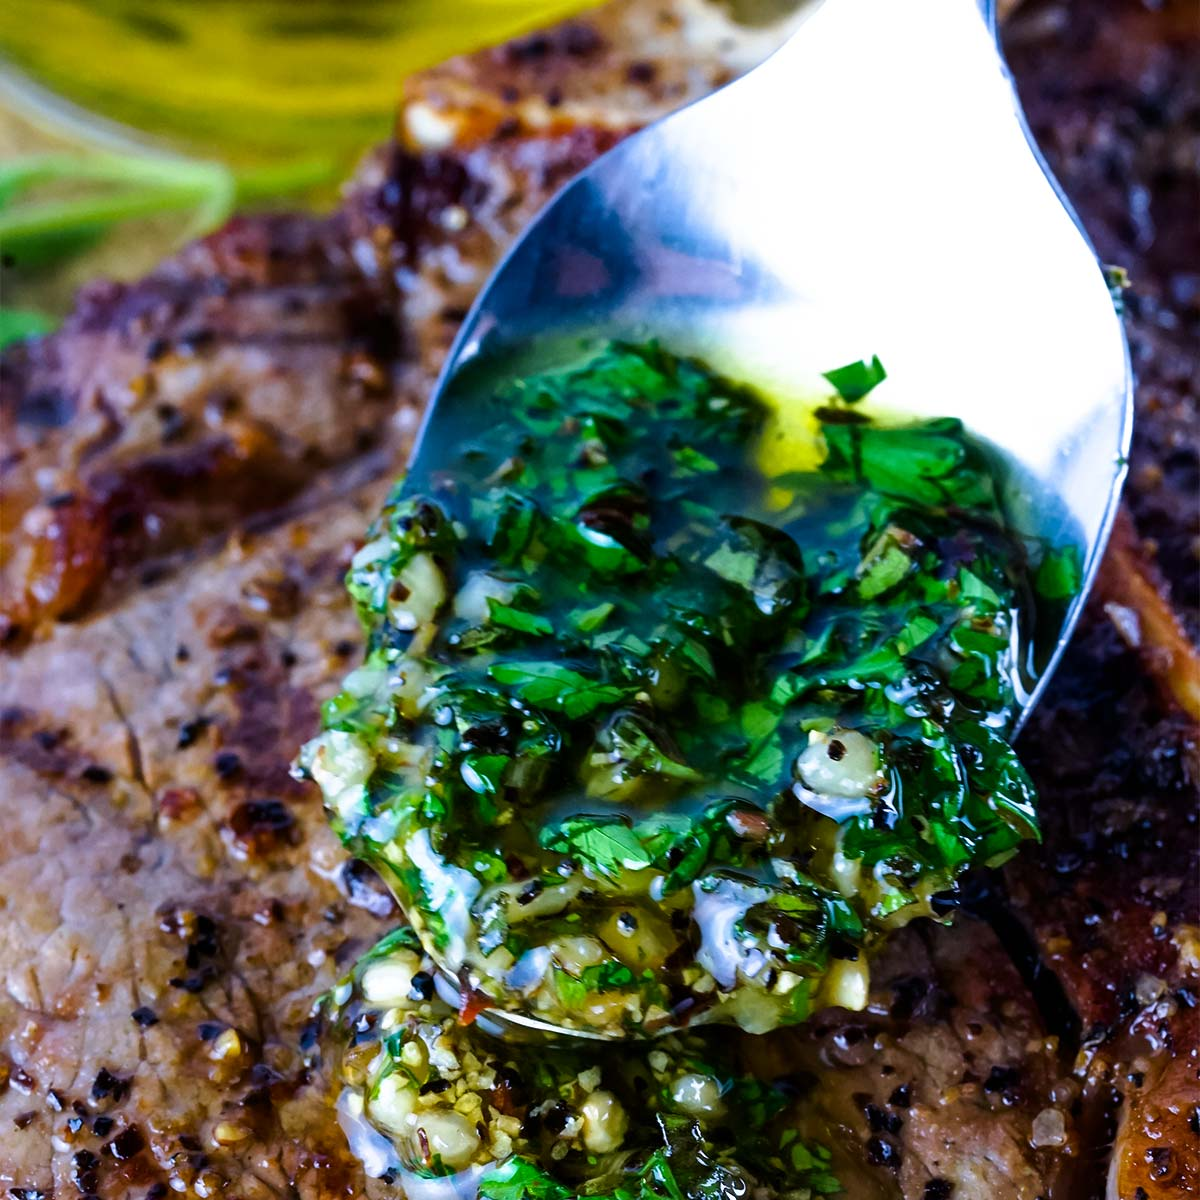 Chimichurri sauce on a spoon close up